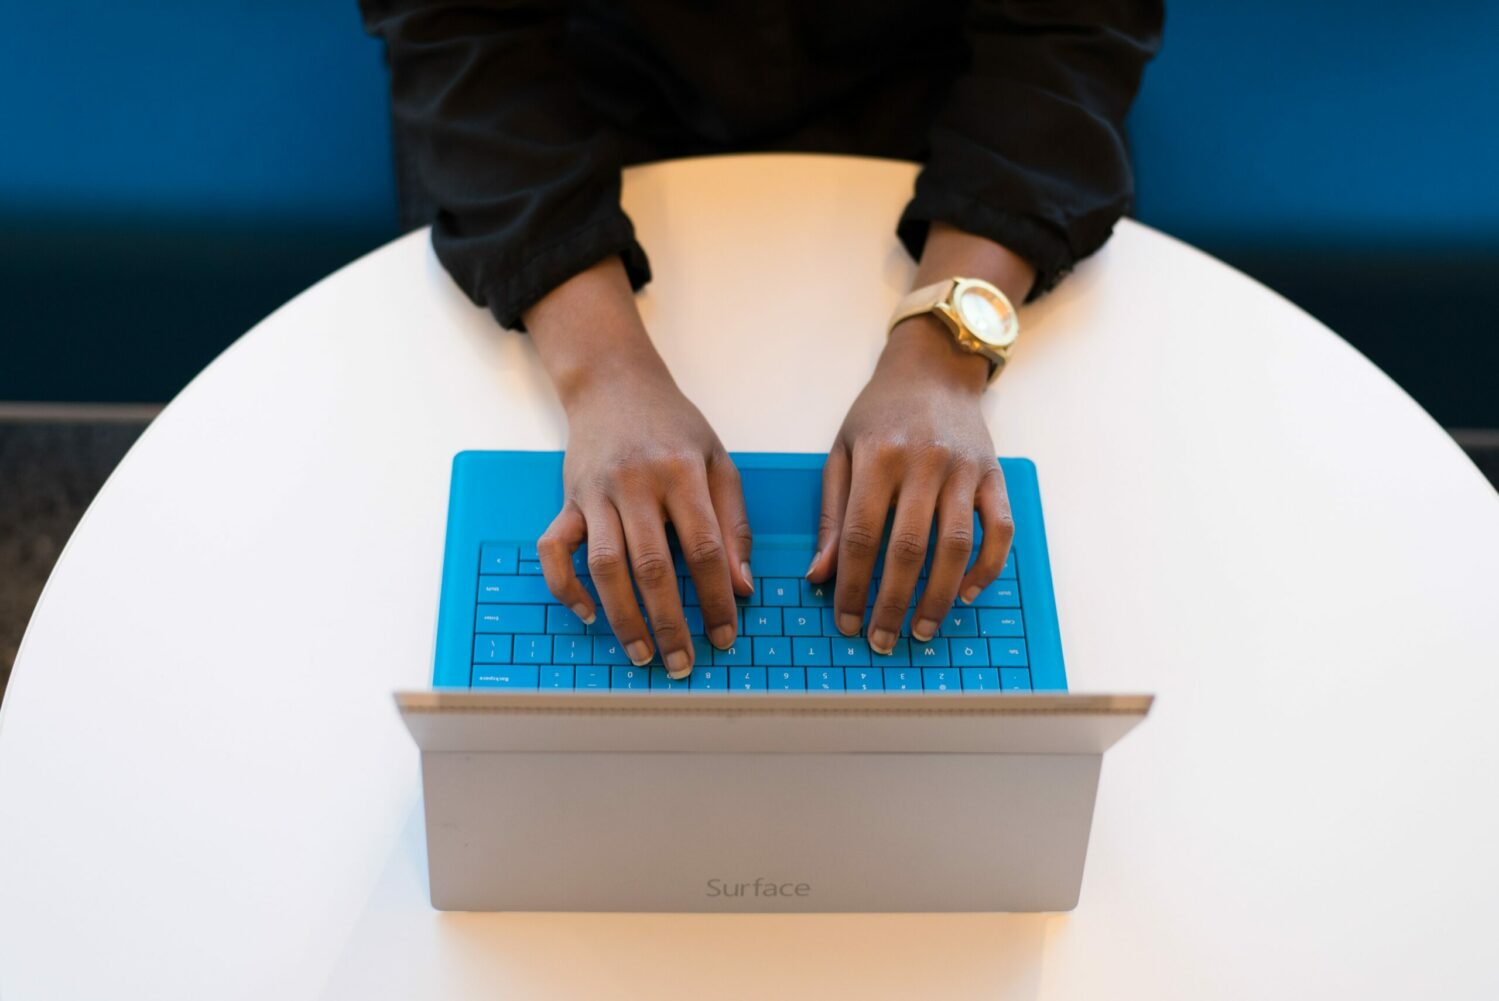 Person's hands hovering over an open laptop